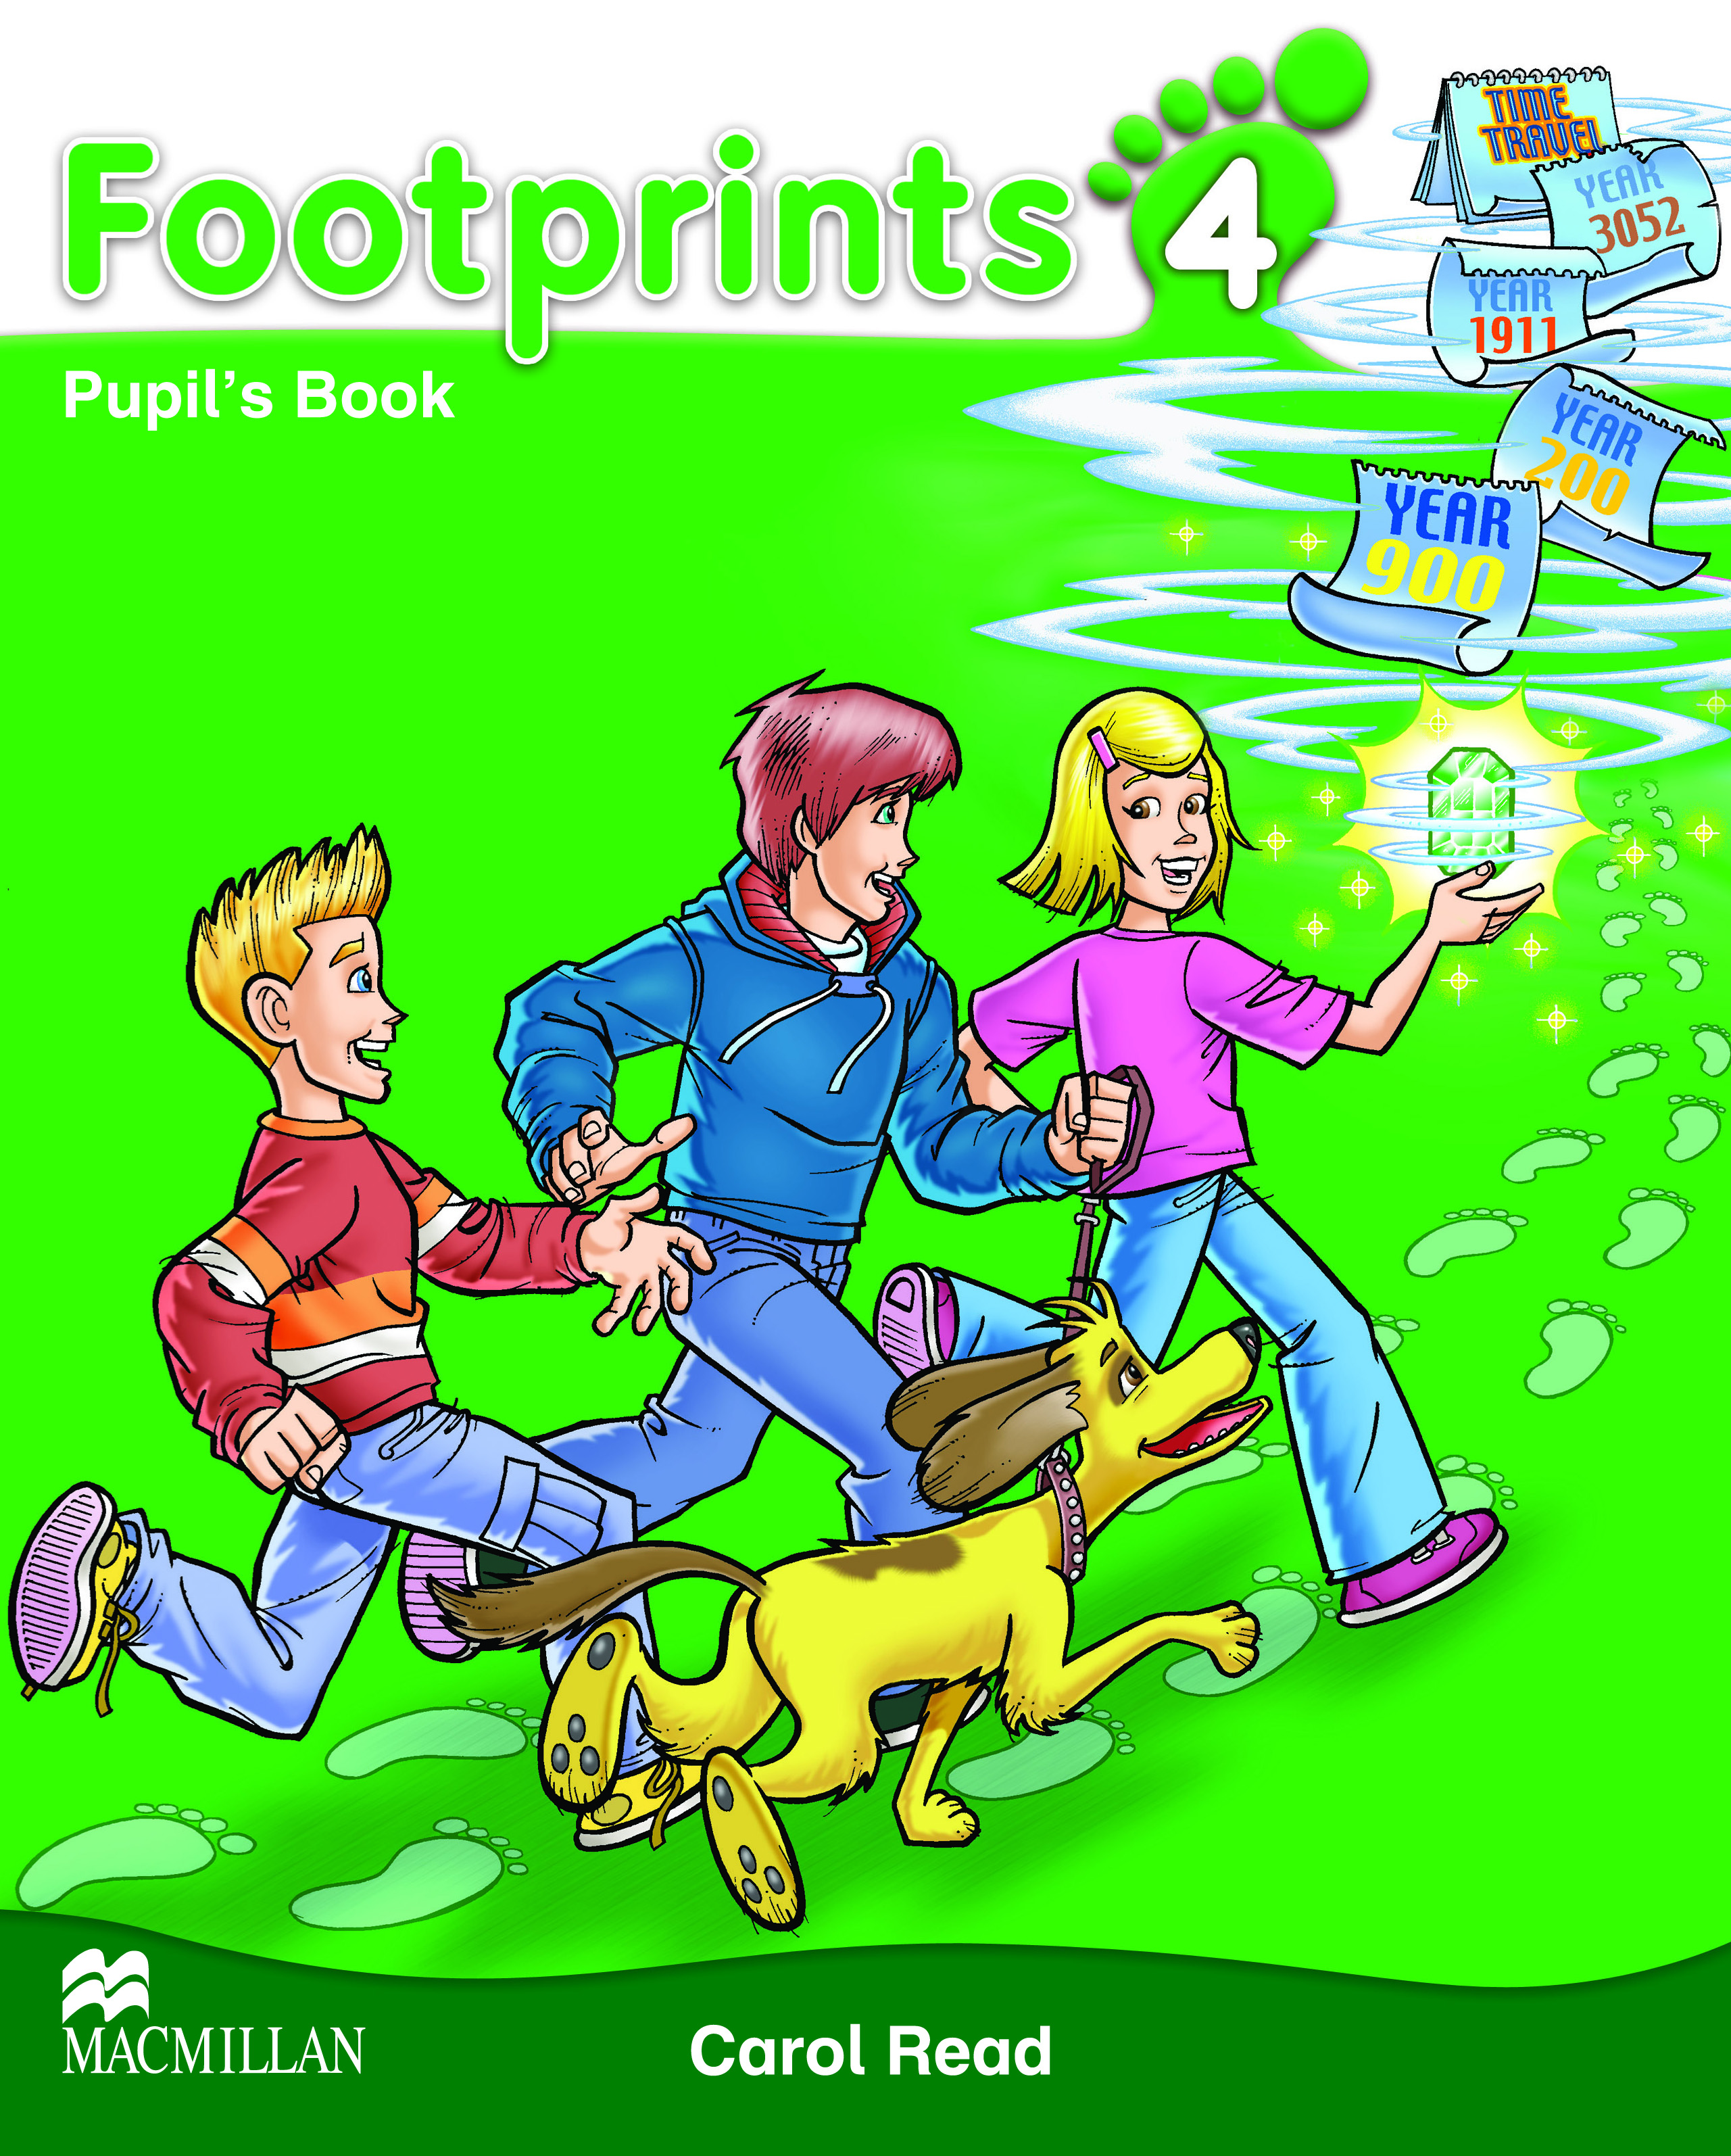 Footprints 4 Pupil